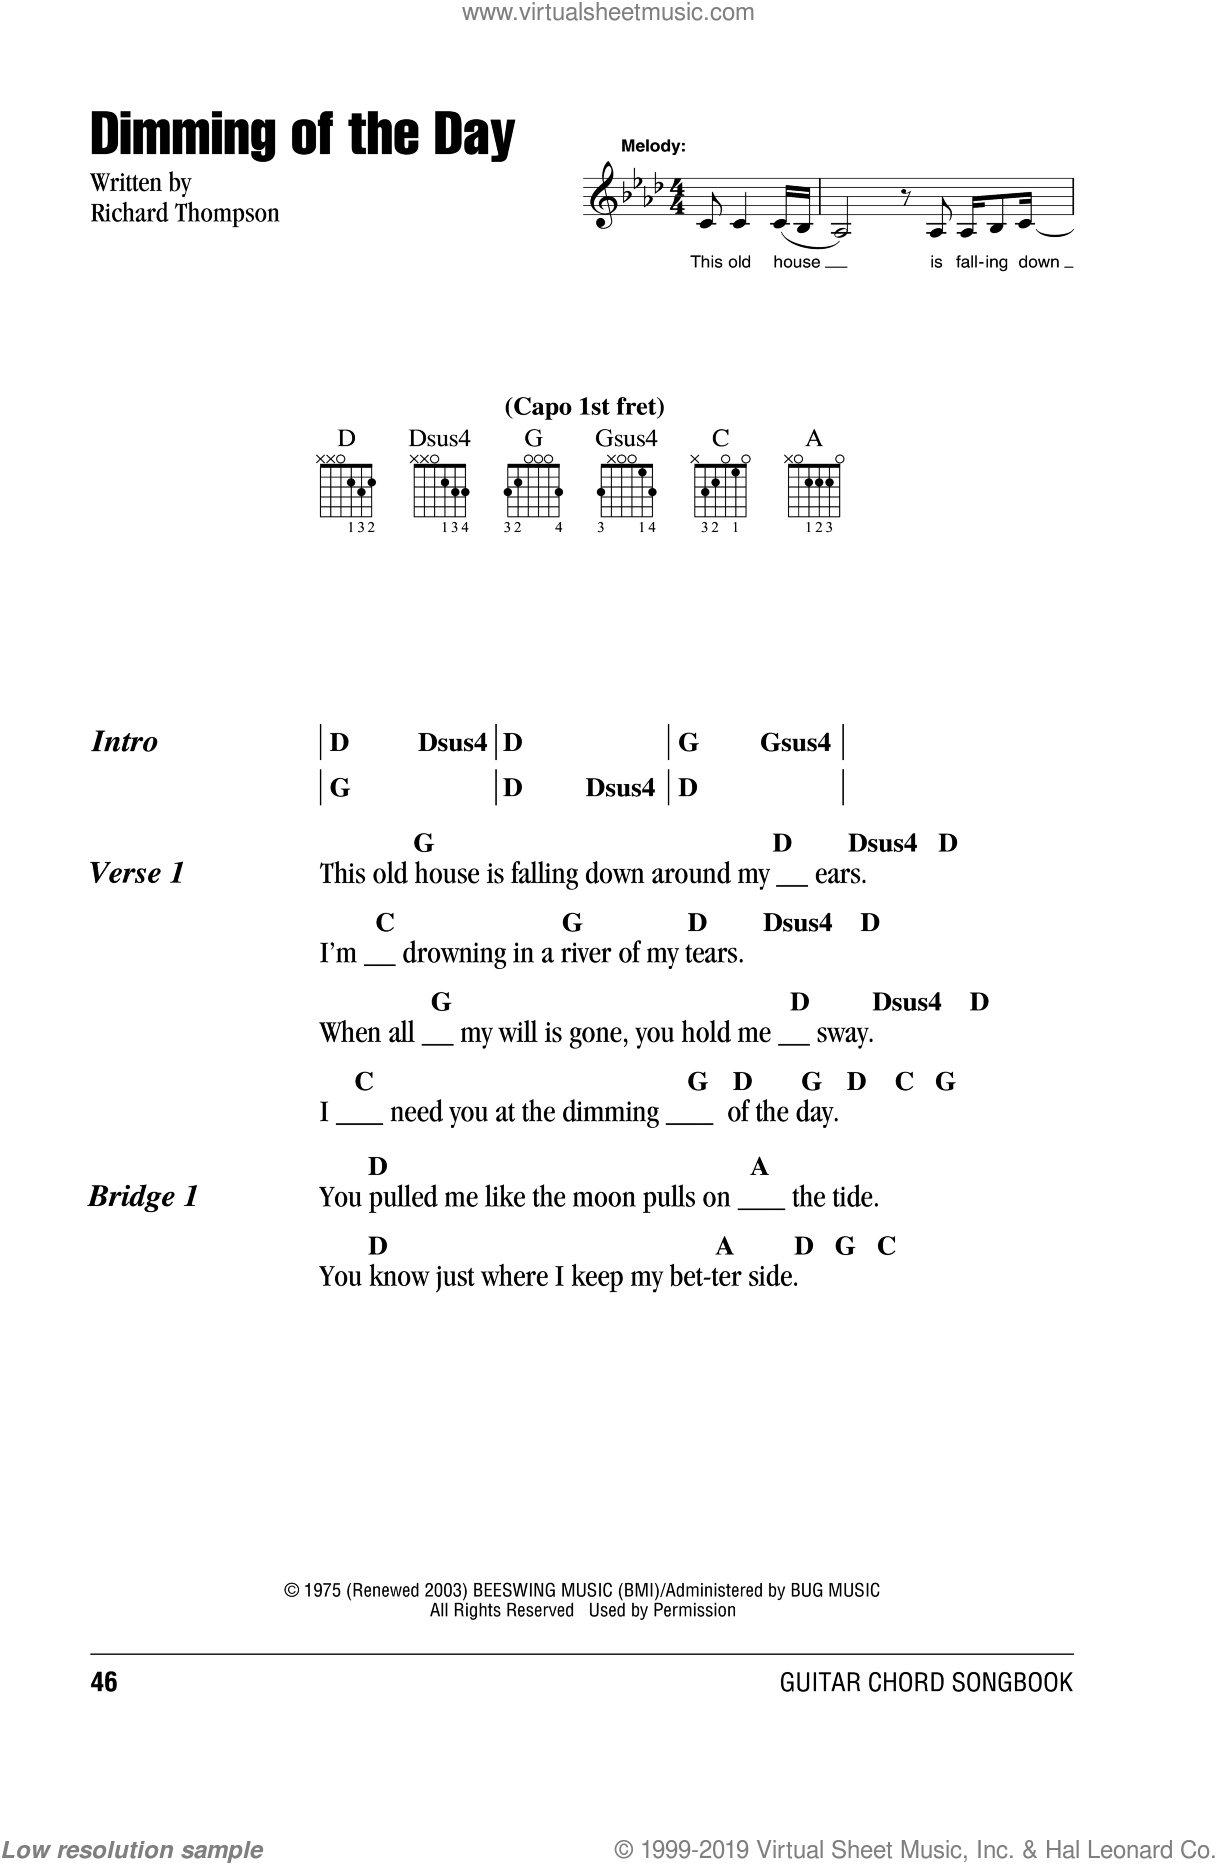 Dimming Of The Day sheet music for guitar (chords) by Richard Thompson